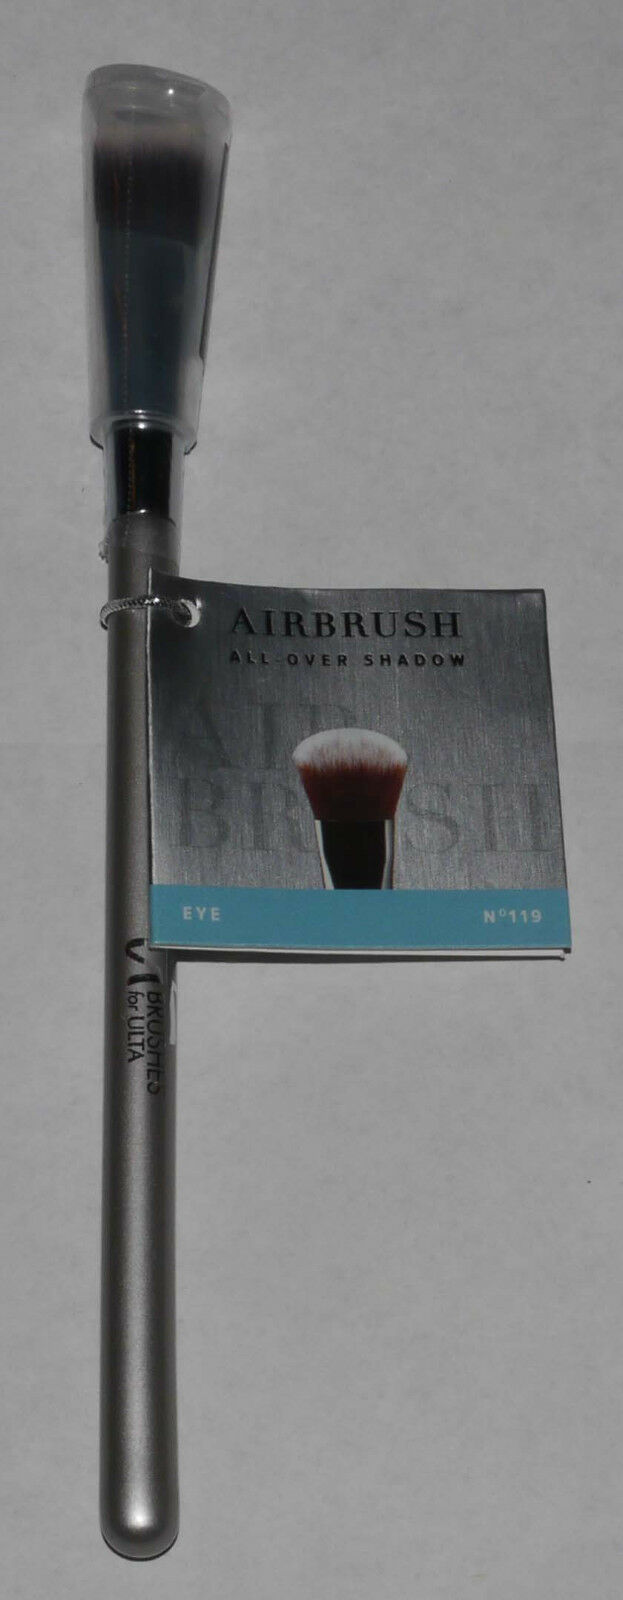 It Cosmetics x ULTA Airbrush All-Over Shadow Brush #119 by IT Cosmetics #6